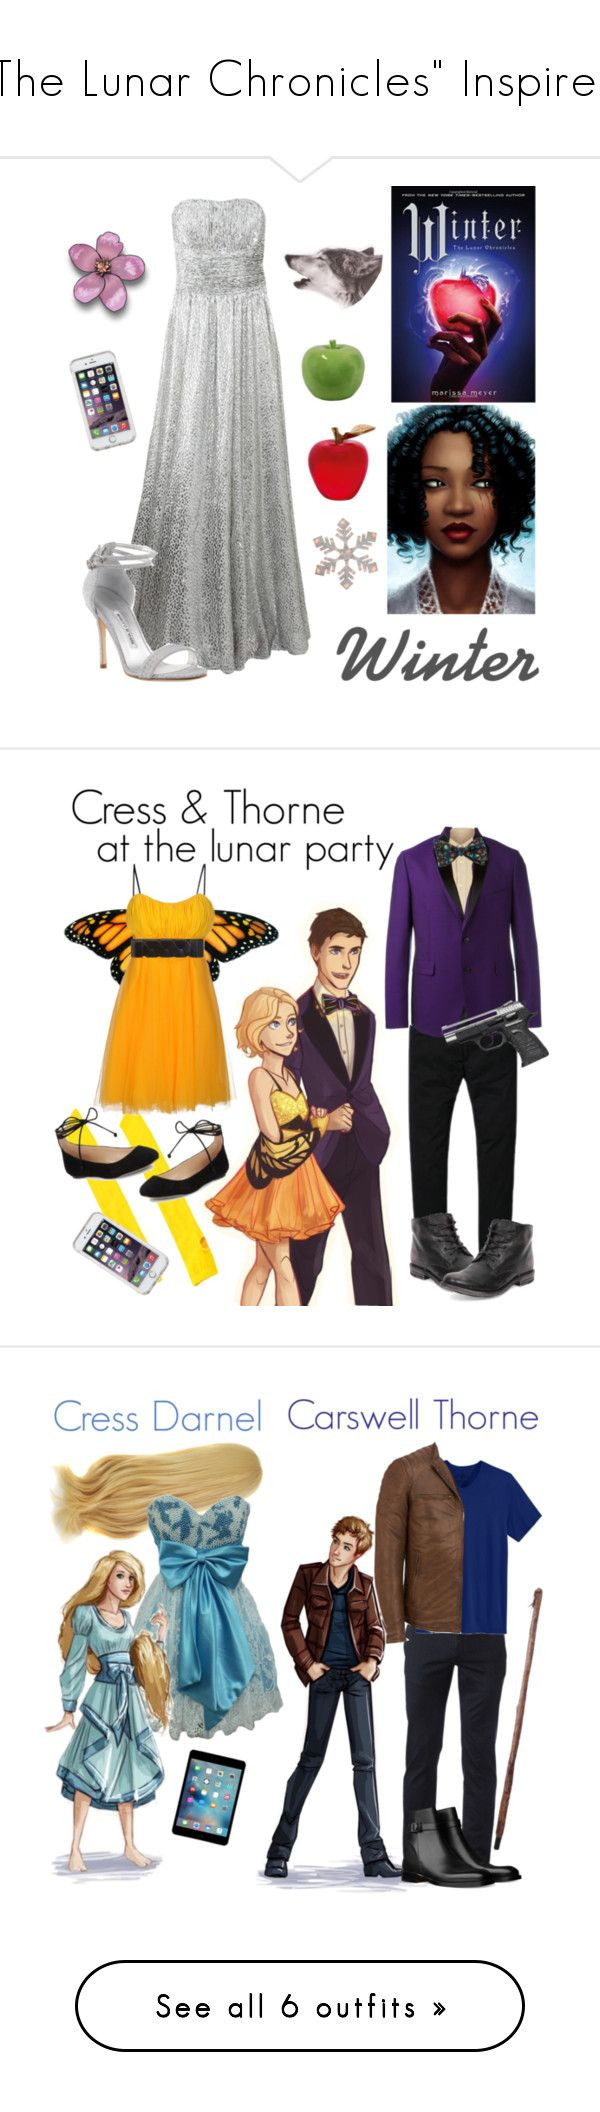 """""""""""The Lunar Chronicles"""" Inspired"""" by scamper623 ❤ liked on Polyvore featuring Michael Kors, Daum, Urban Trends Collection, Speck, Manolo Blahnik, Allure, 120% Lino, Paul Smith, Topman and Thomas Pink"""